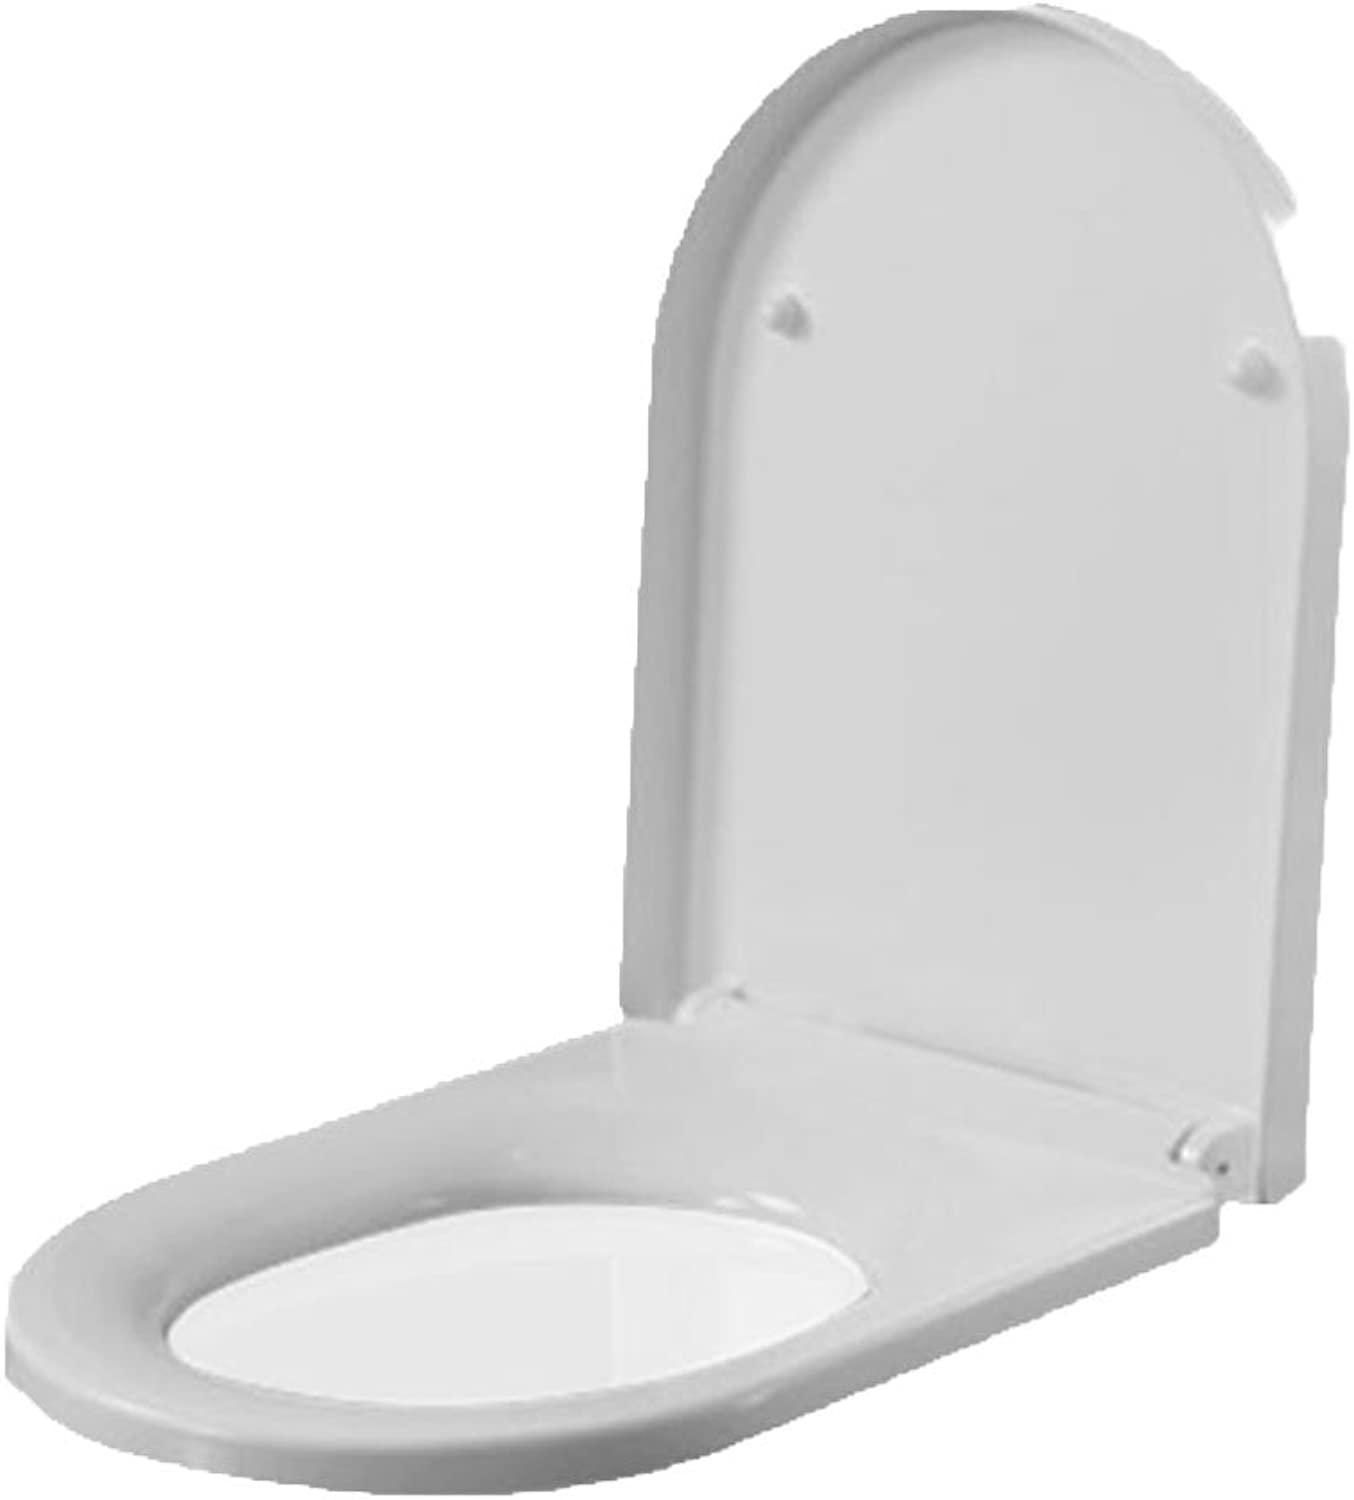 S-graceful Toilet Seat U Shape Toilet Lids With Urea-formaldehyde Resin Buffer Pad Quick Release Ultra Resistant Top Mounted Toilet Cover For Bathroom,White-46  36CM